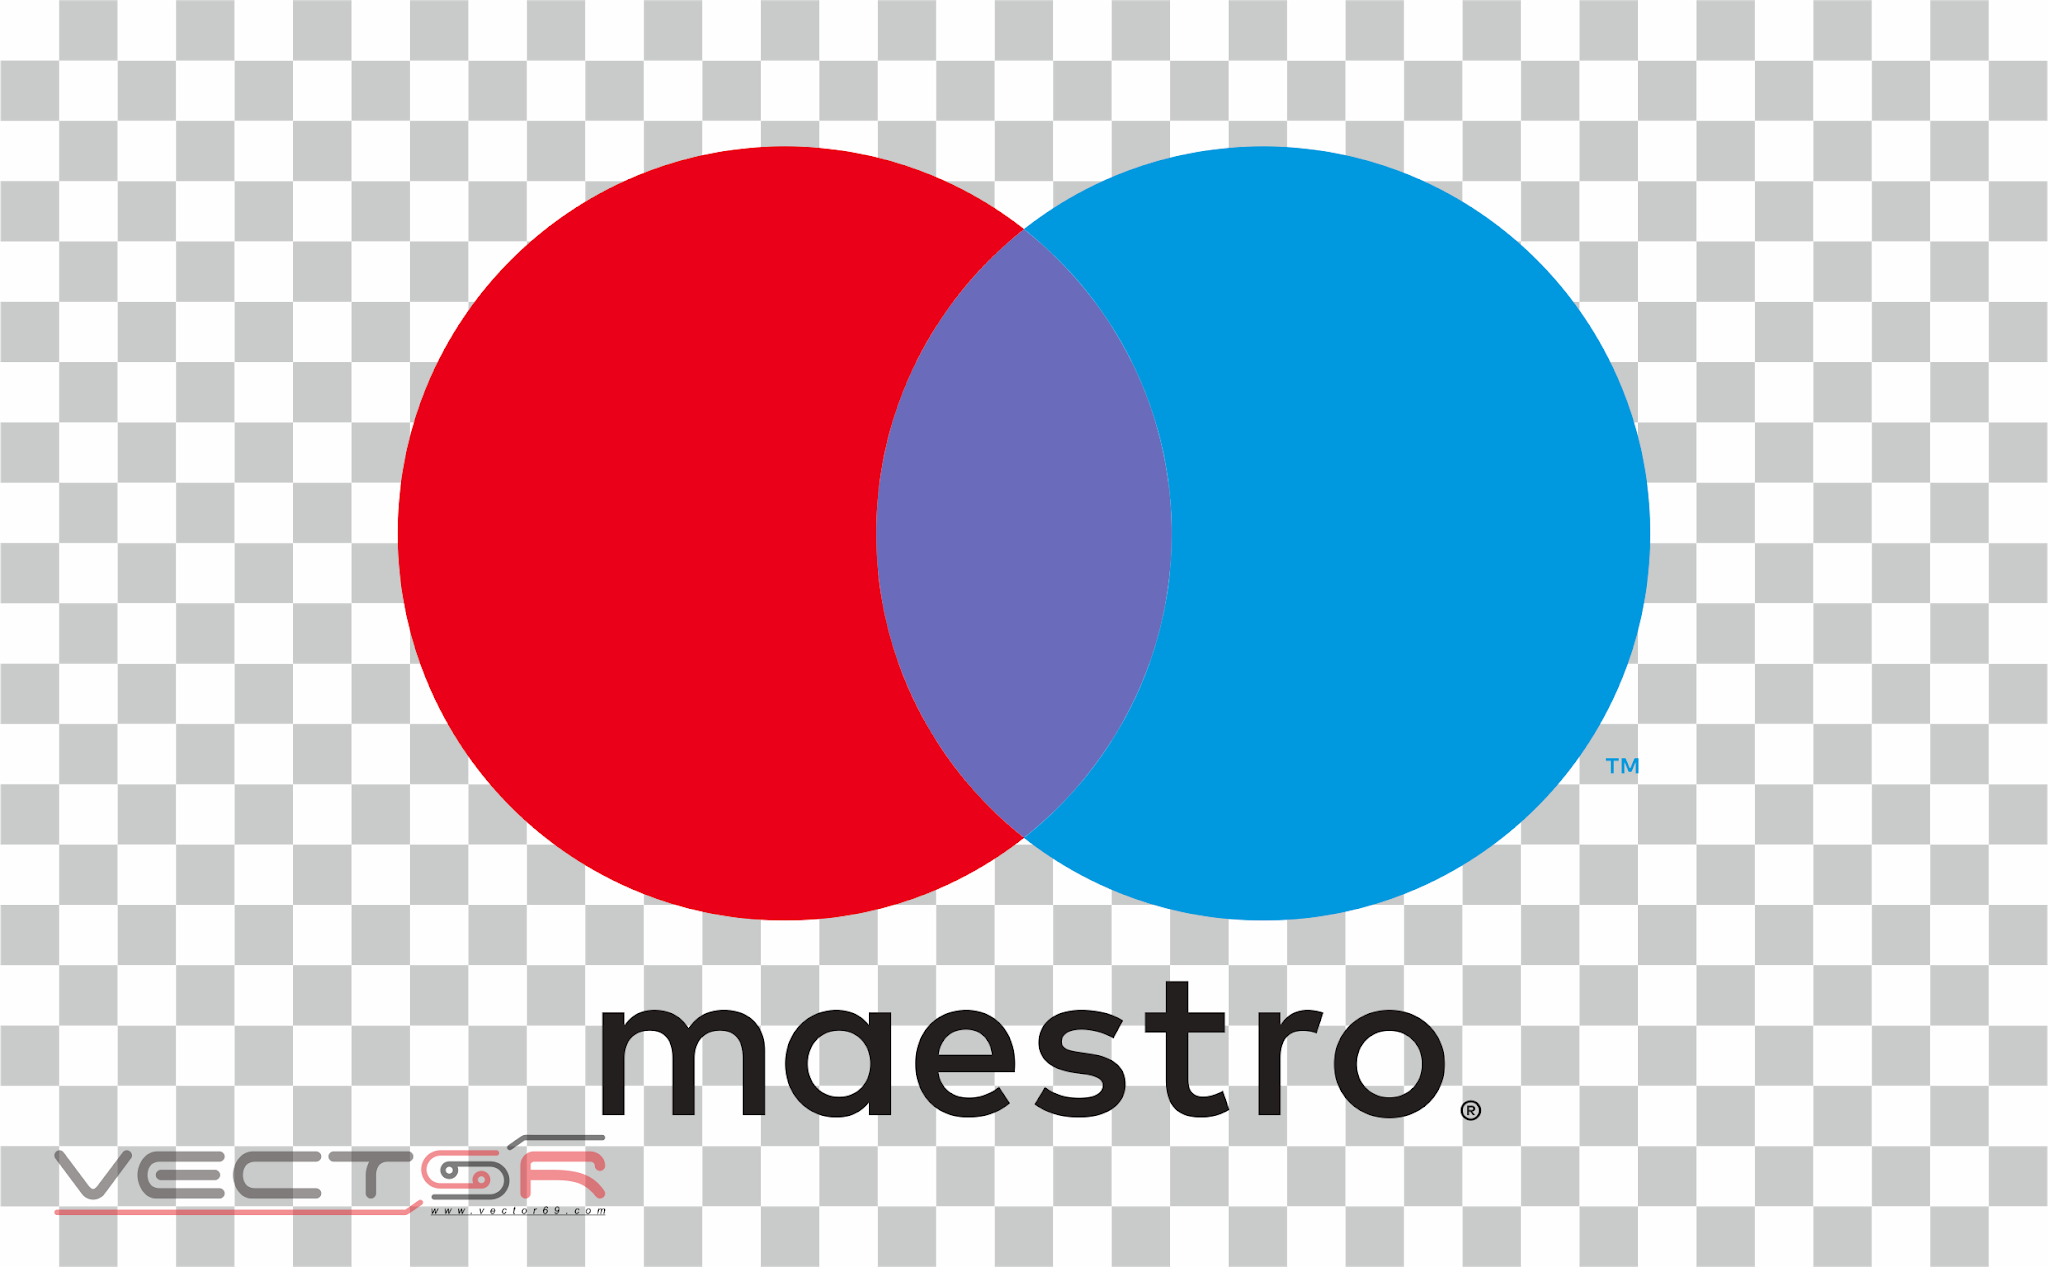 Mastercard Maestro Logo - Download .PNG (Portable Network Graphics) Transparent Images